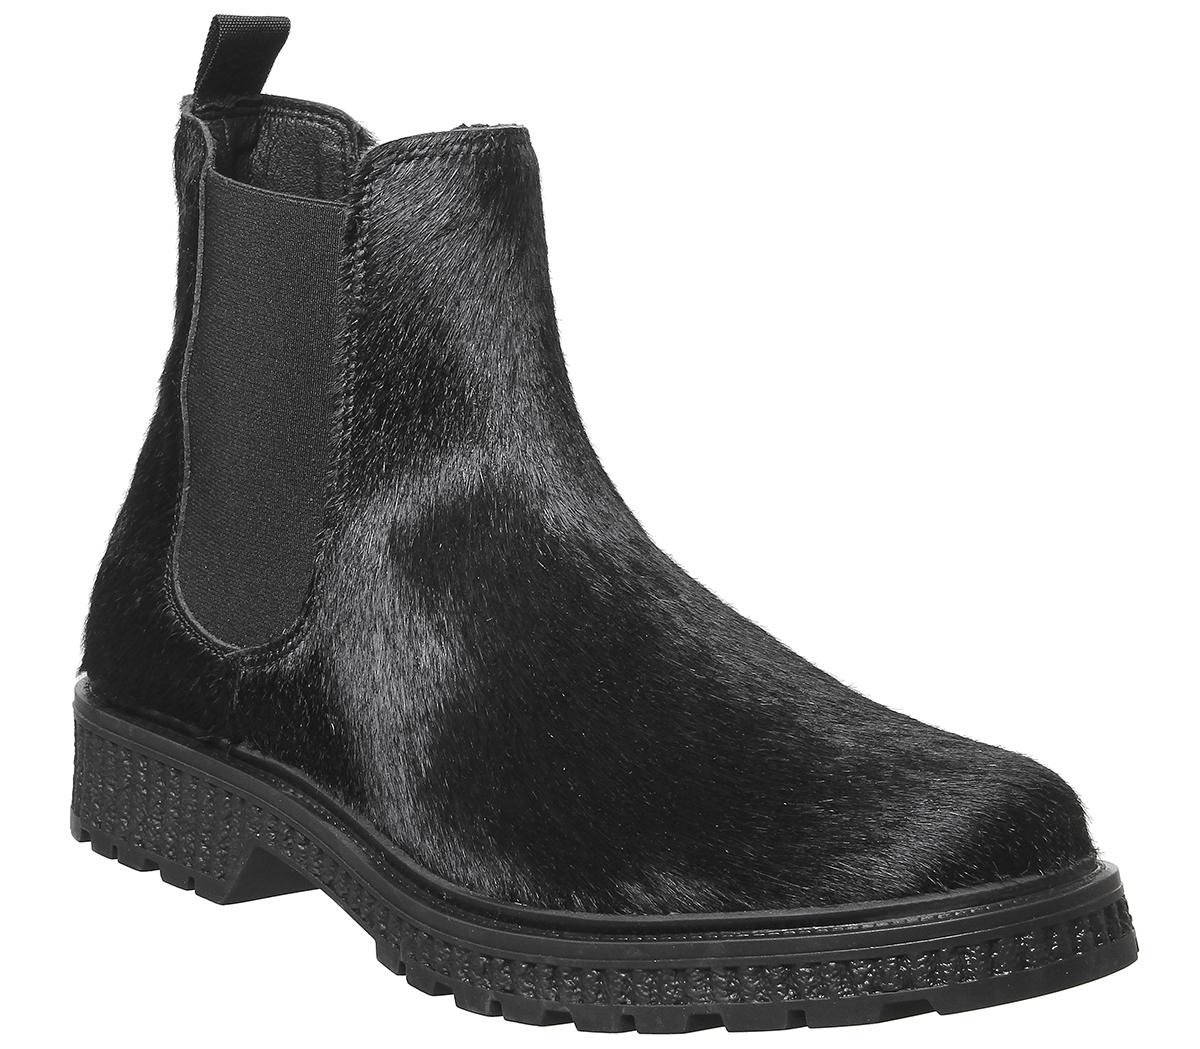 Boar Chelsea Boot Black Pony Hair - Boots